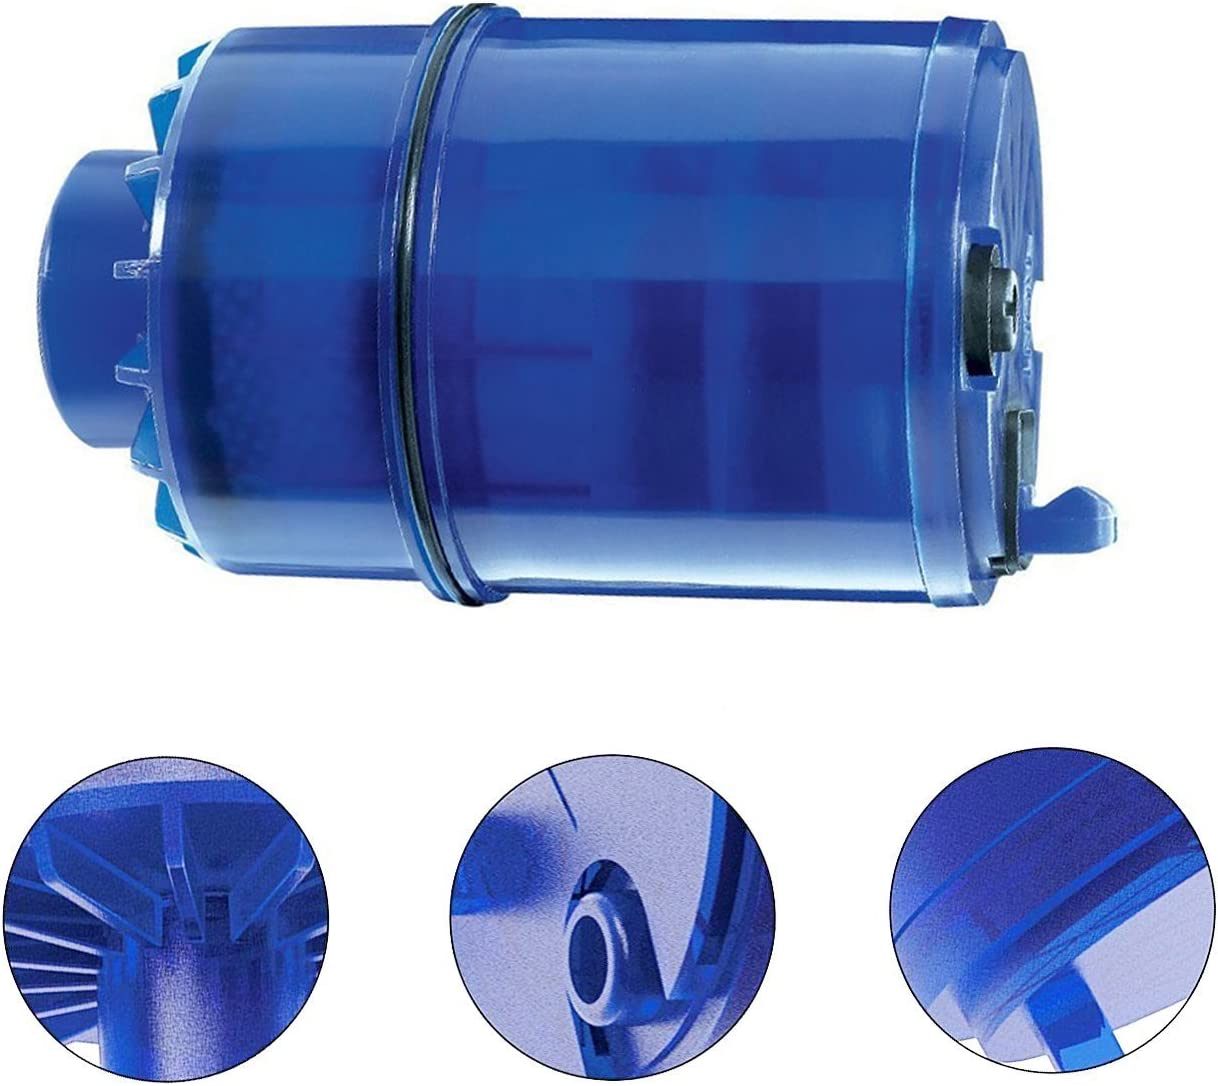 RF-9999 Water Filter Compatible with Pur RF9999 Faucet Replacement Water Filter